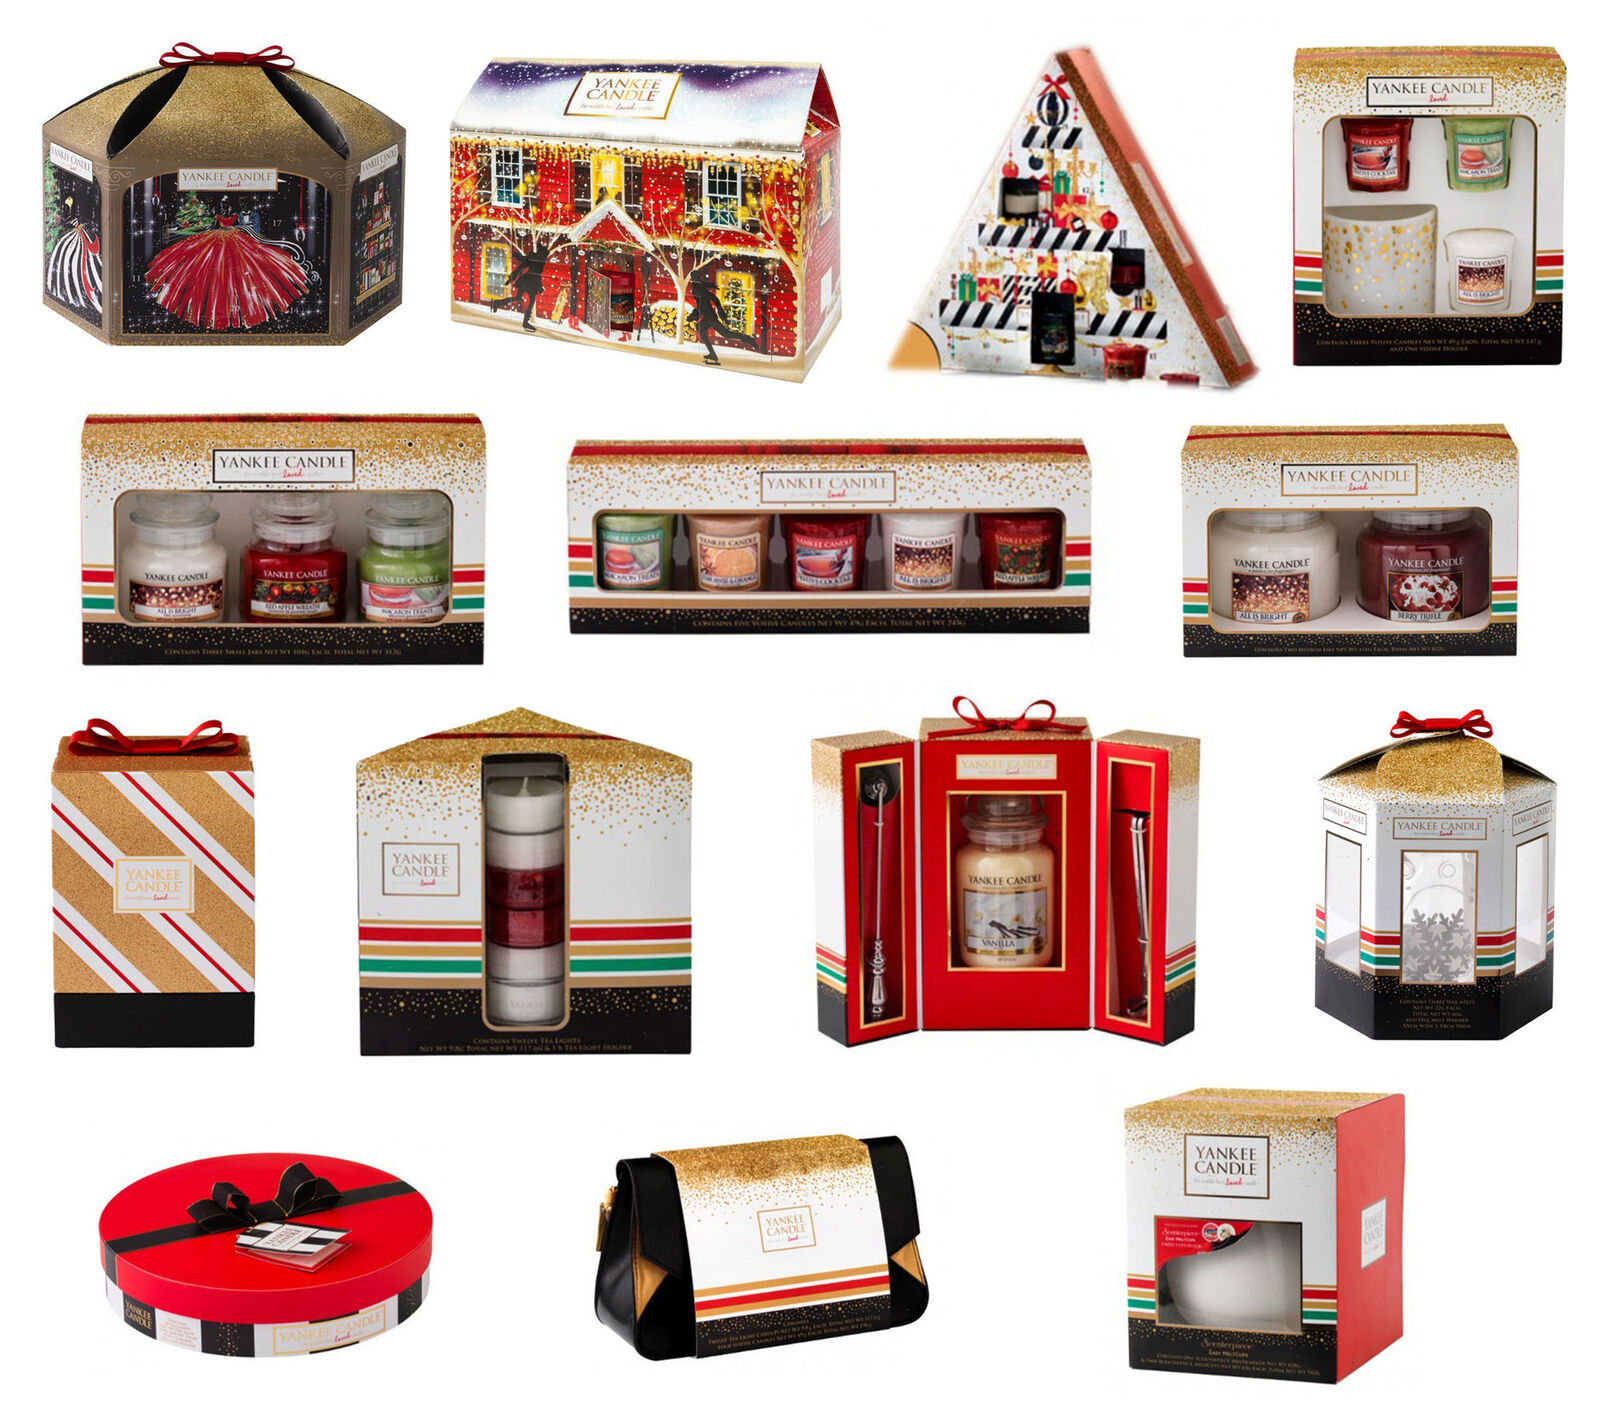 YANKEE CANDLE Christmas Gift Sets - Includes 2017 Perfect Christmas Collection - U00a38.99 | PicClick UK